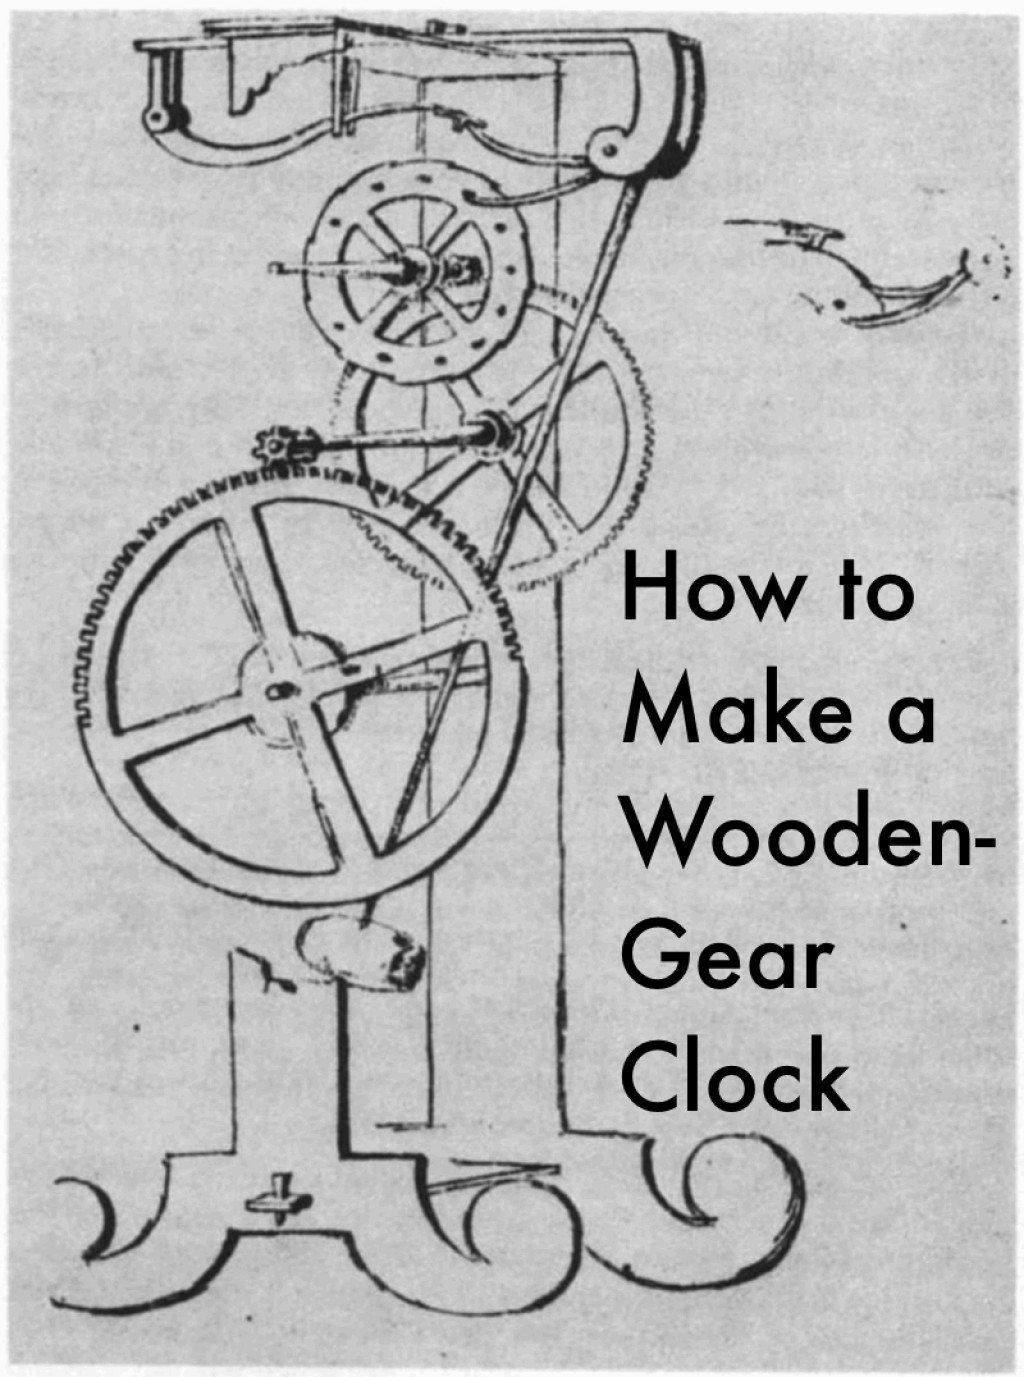 The basic parts of a wooden gear clock, how they work, and